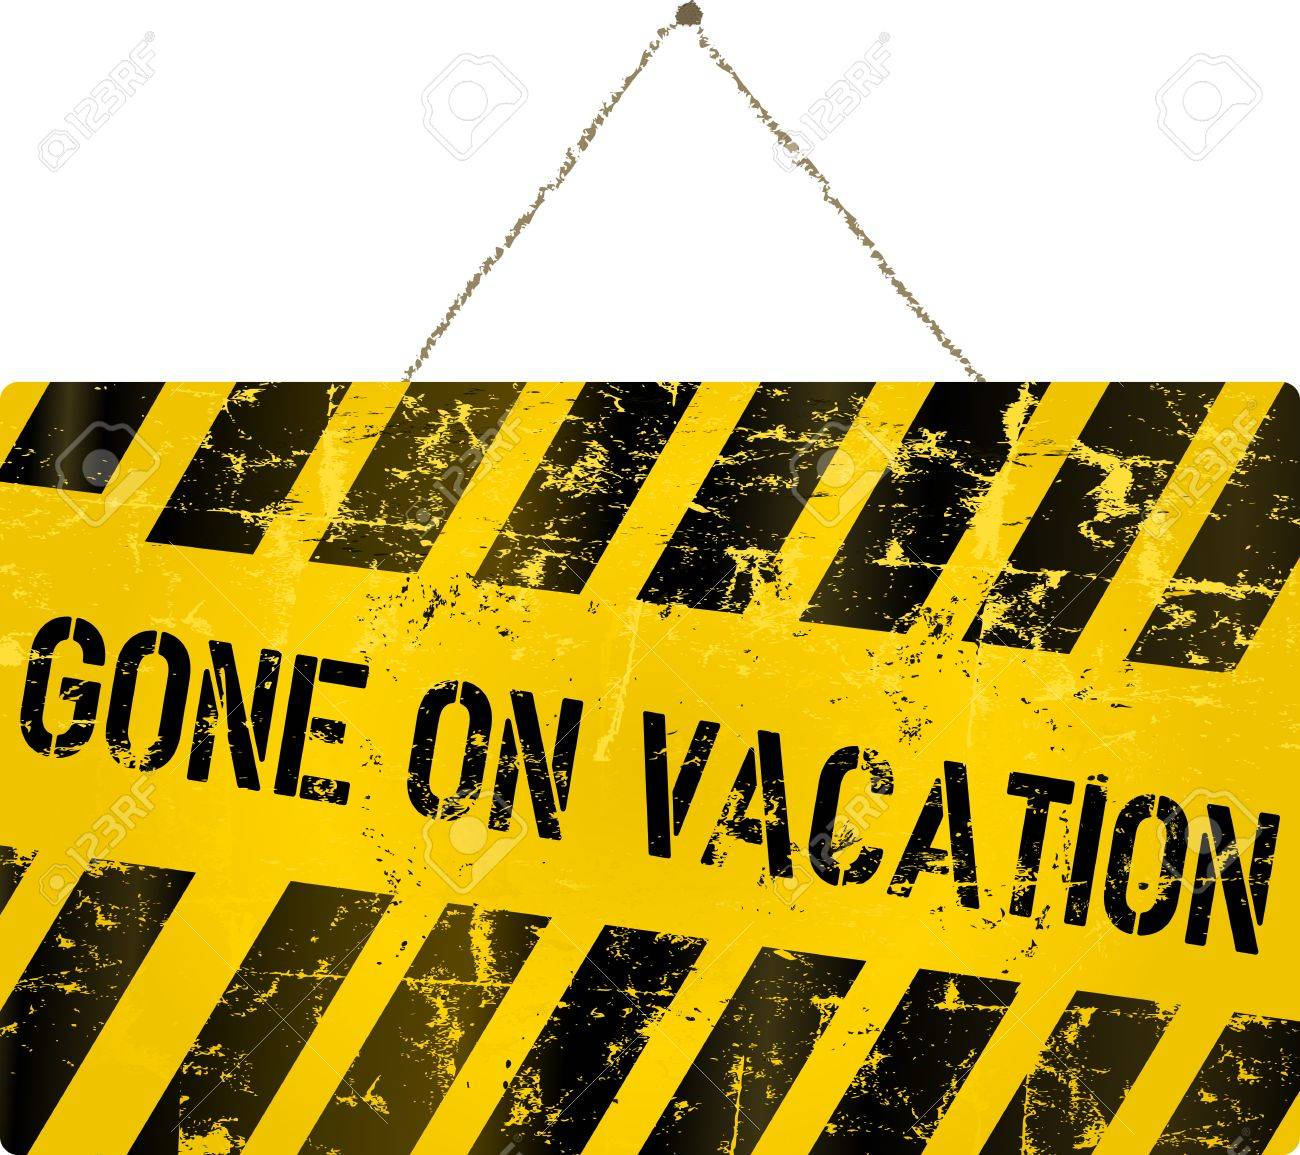 Gone On Vacation Sign Vector Illustration Royalty Free Cliparts Vectors And Stock Illustration Image 37200590